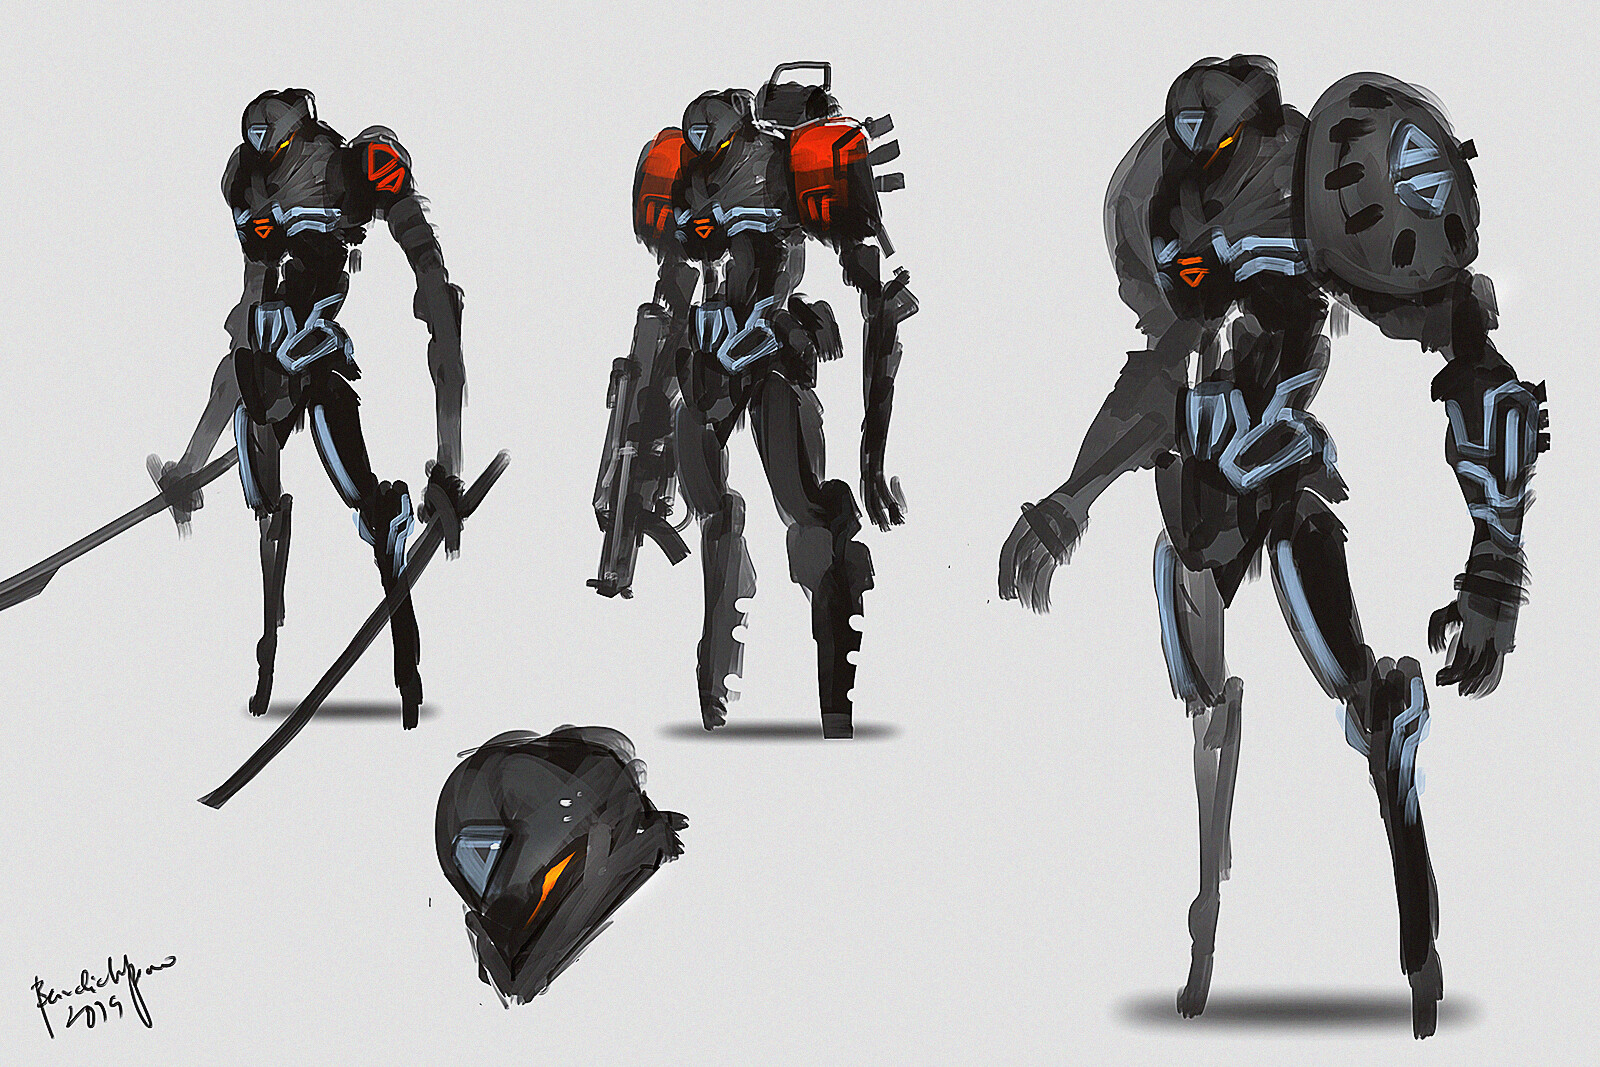 cyber unit - arm/weapon upgrades. - can upgrade to fast to heavy mechanized unit.